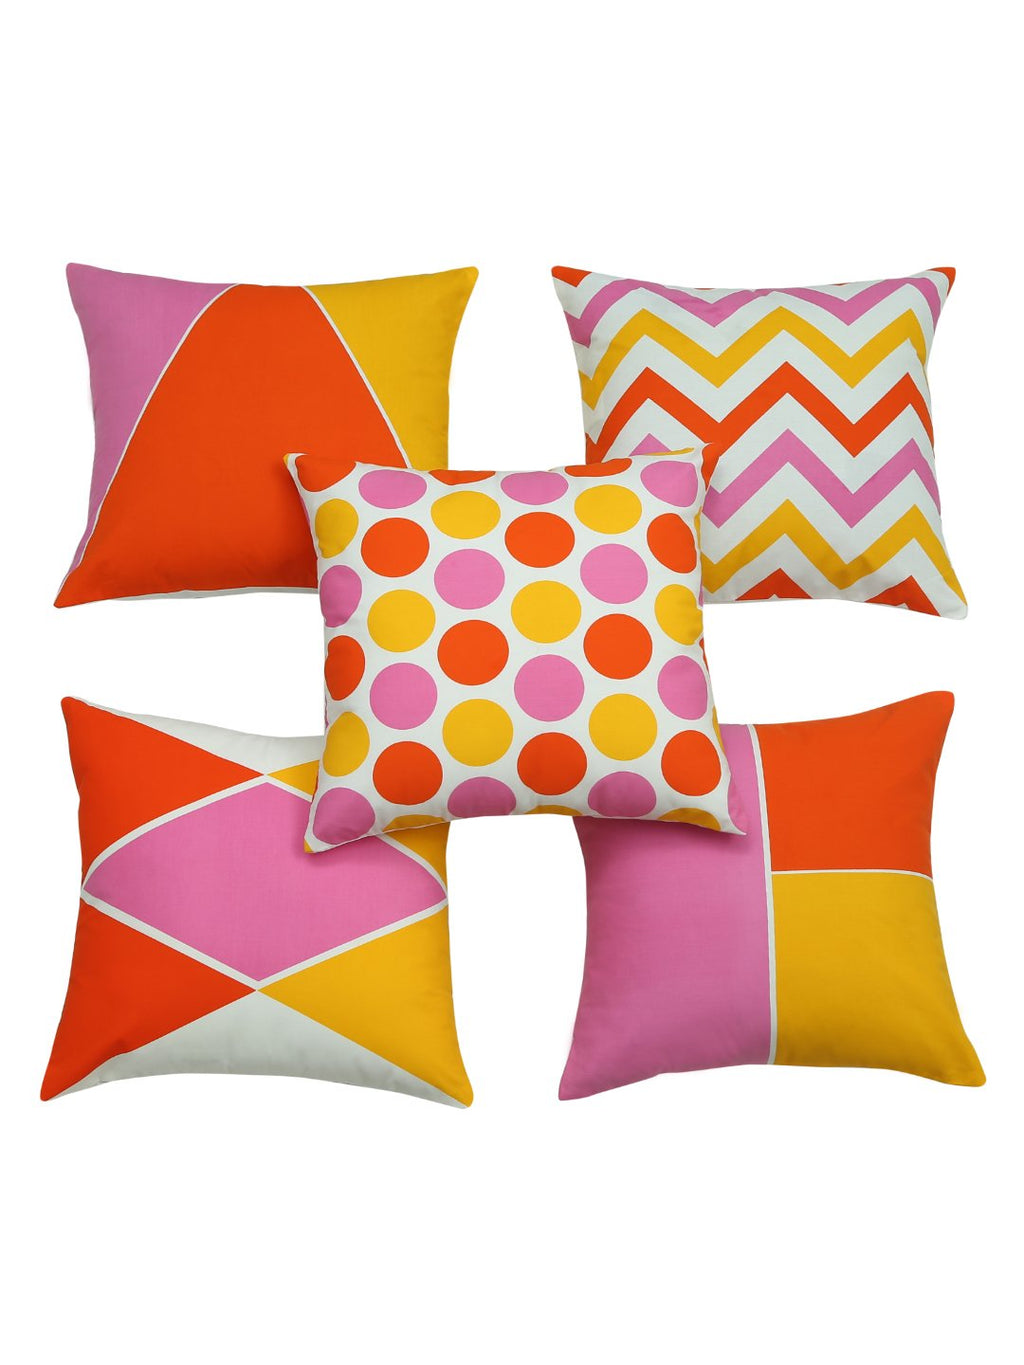 Handcrafted Abstract Geometry Coral Cushion Covers (Set of 5)